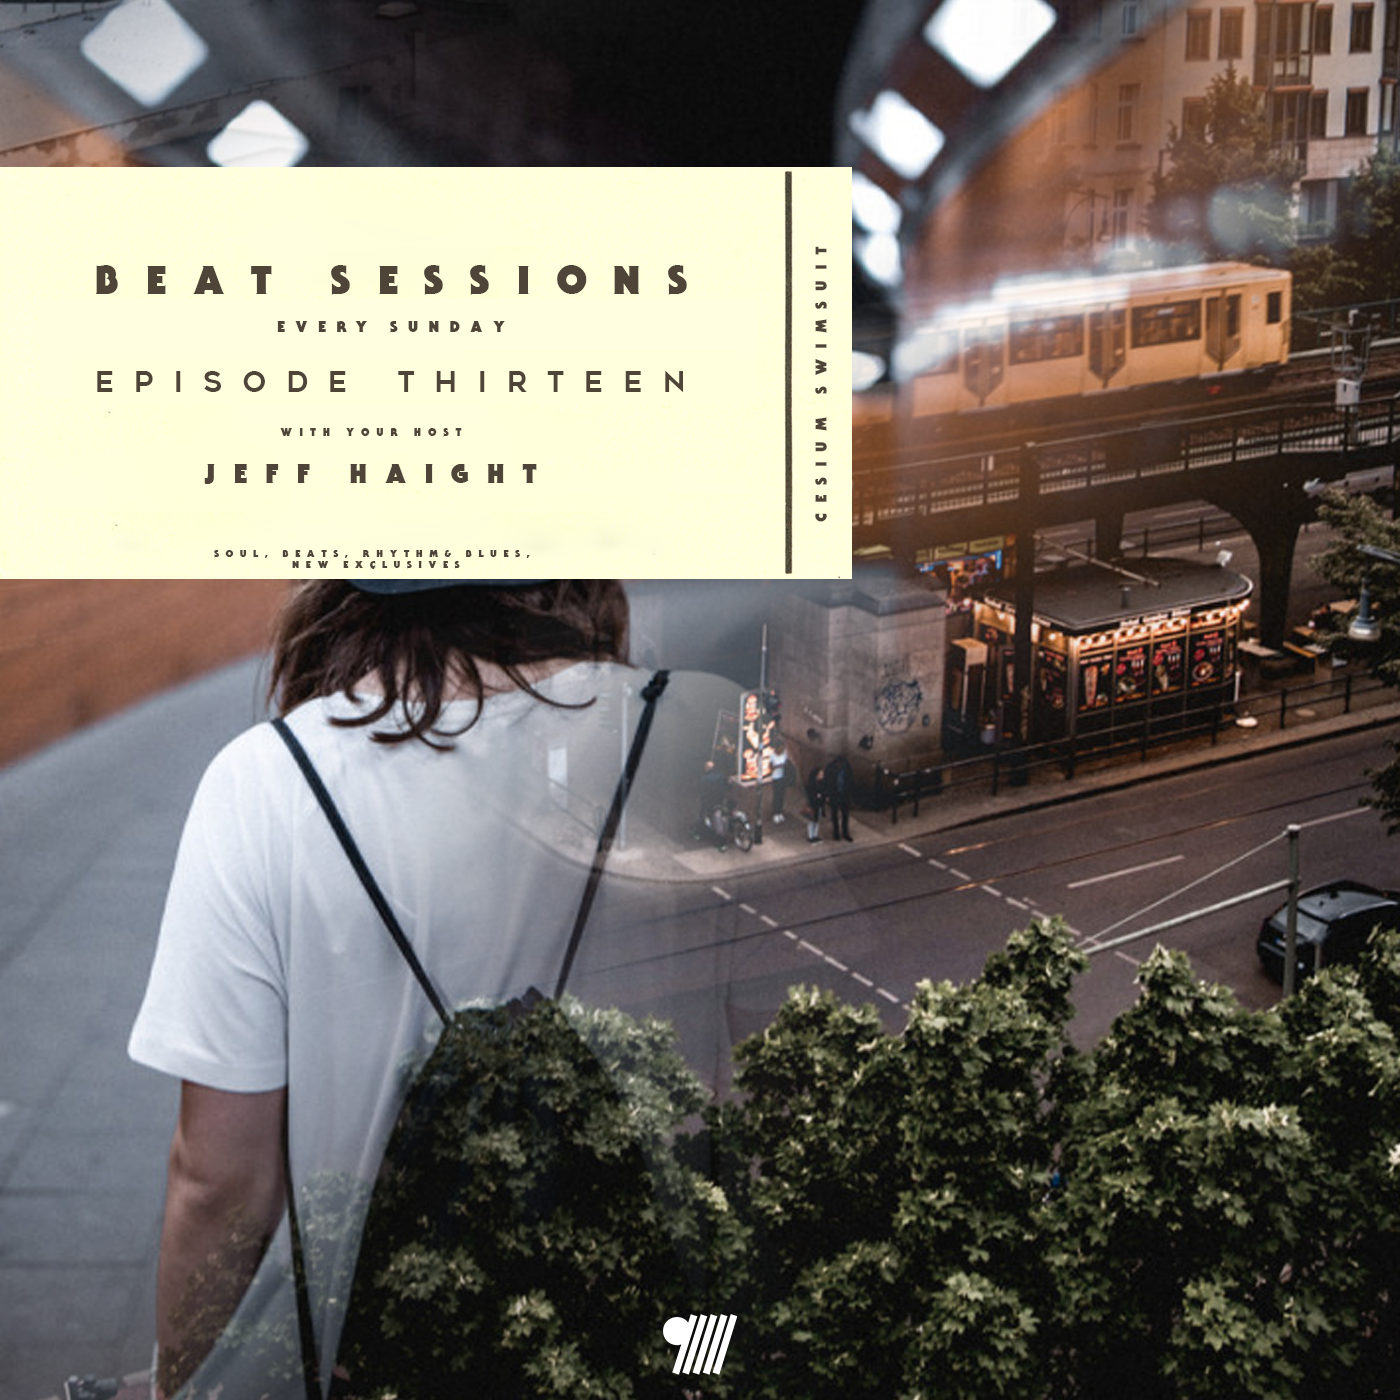 Beat Sessions - Episode Thirteen with Jeff Haight